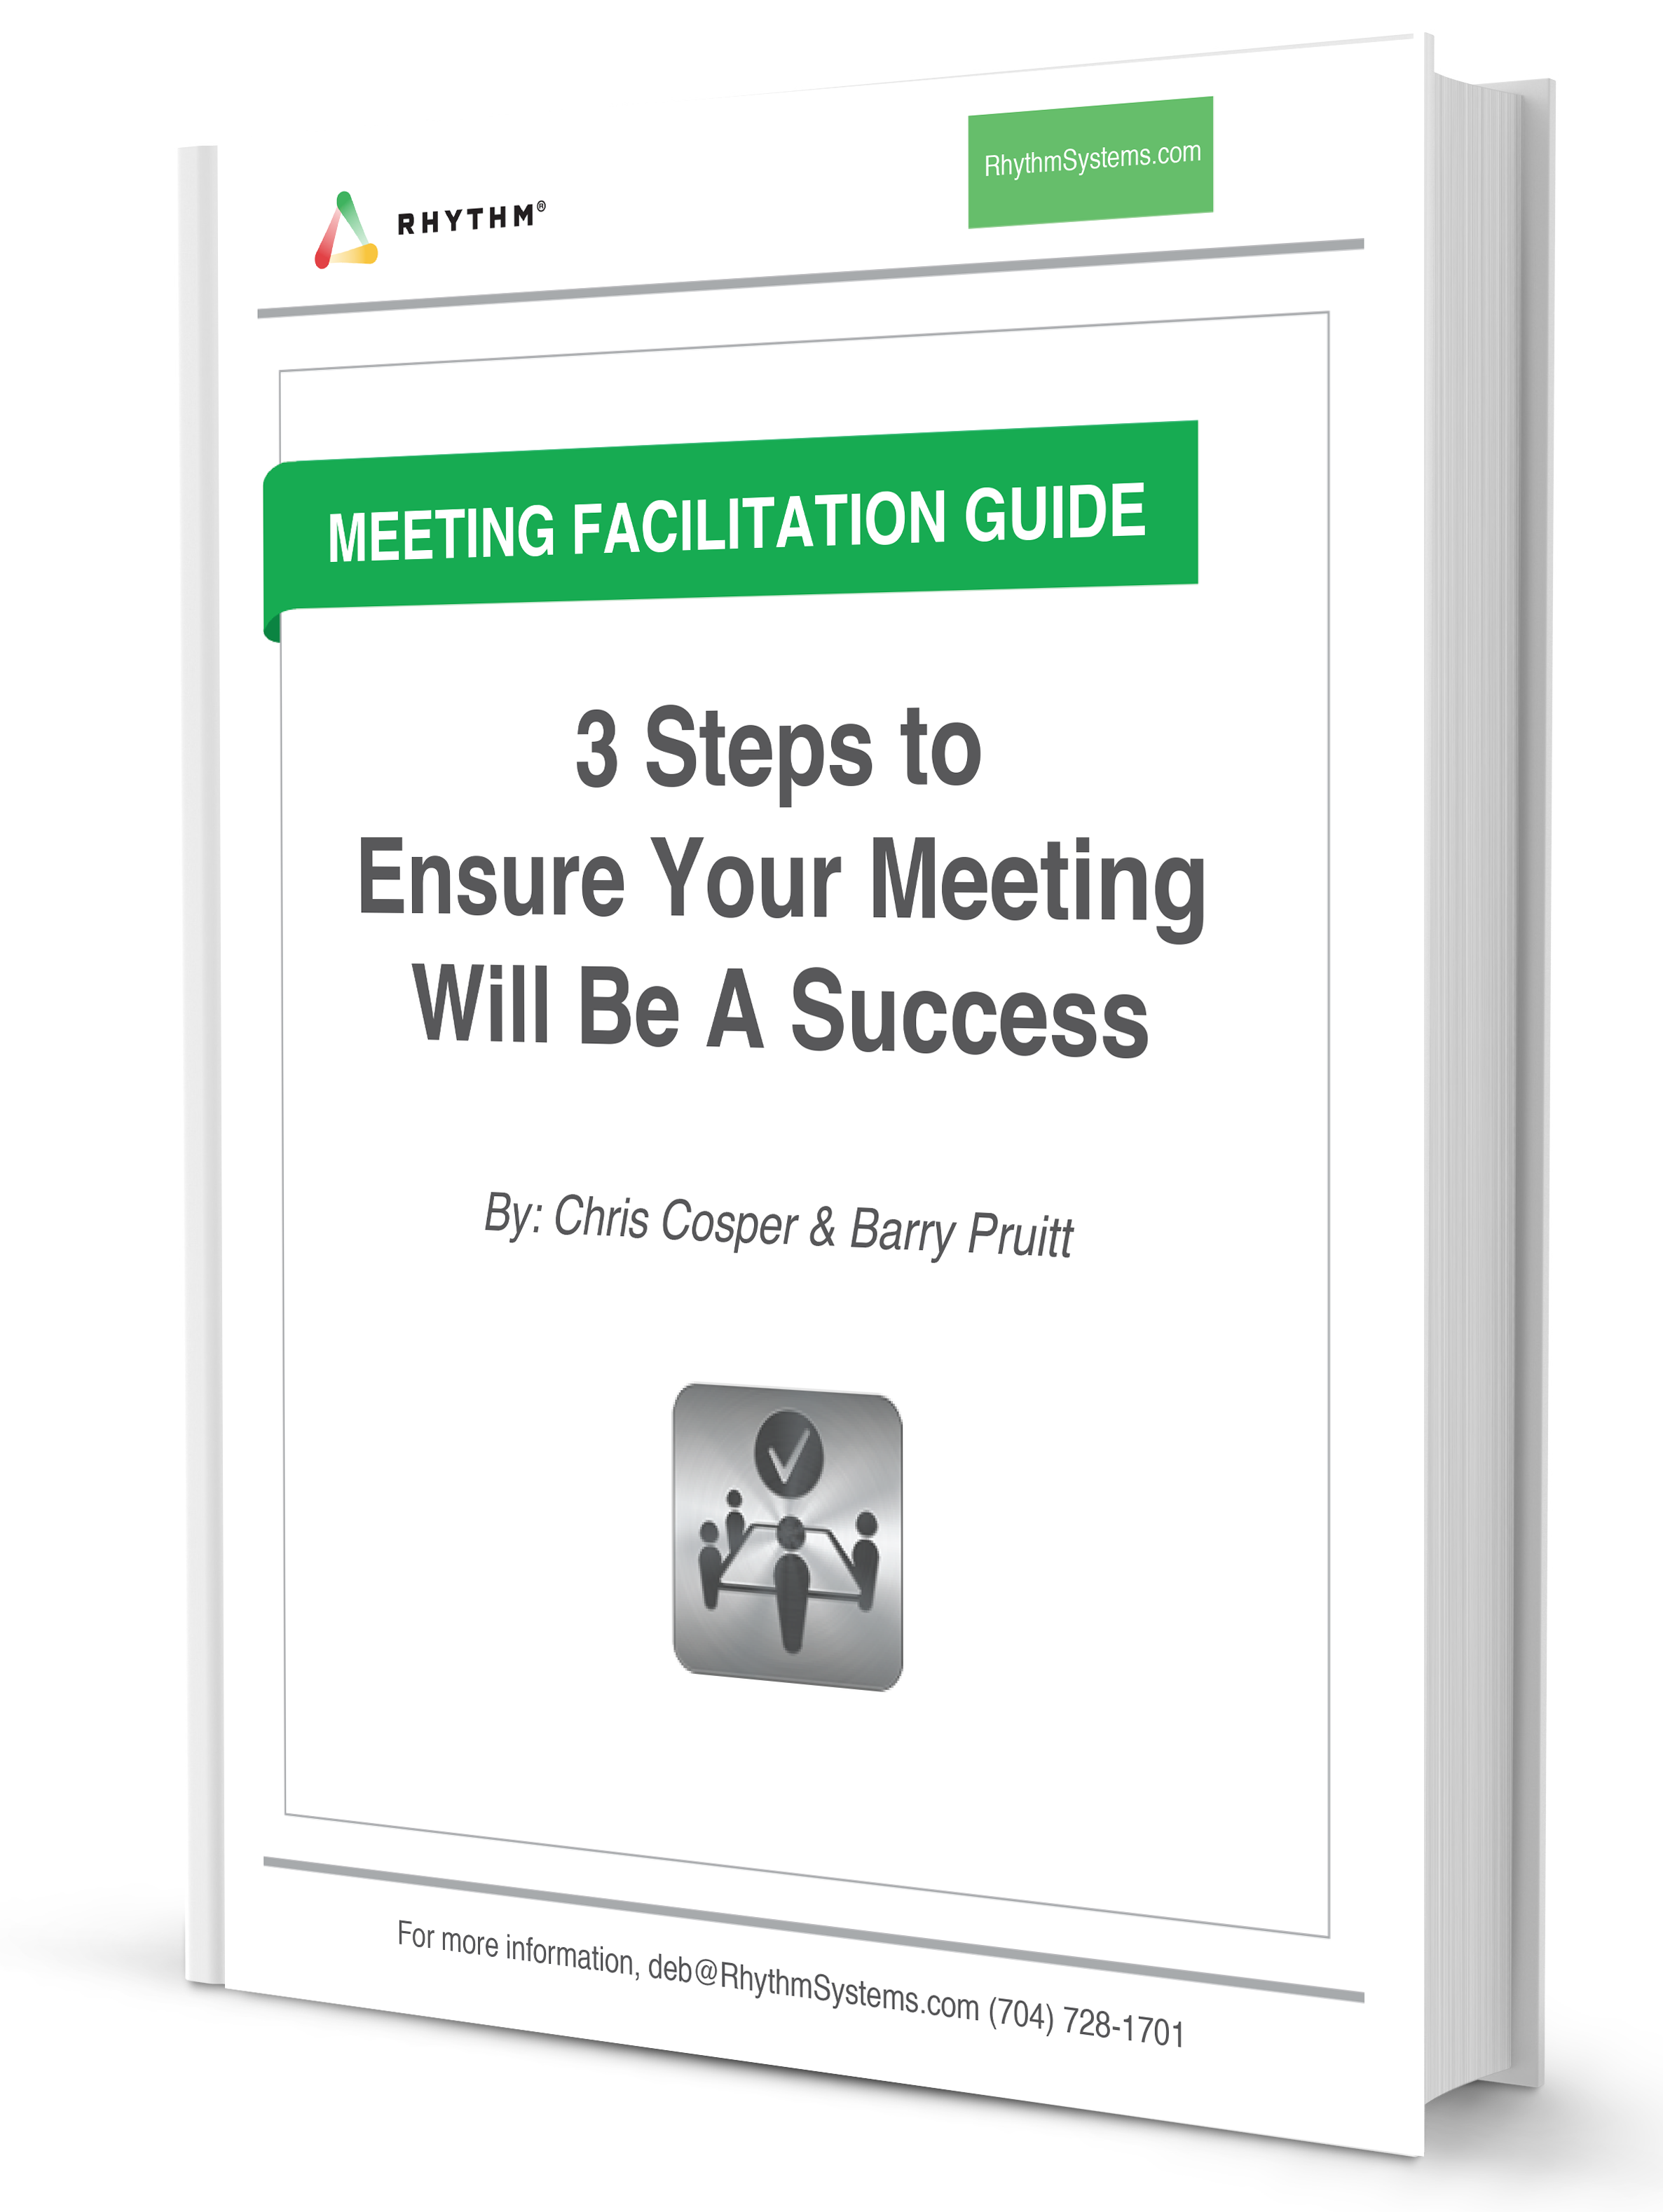 3 Steps to Ensure Your Meeting Will Be A Success